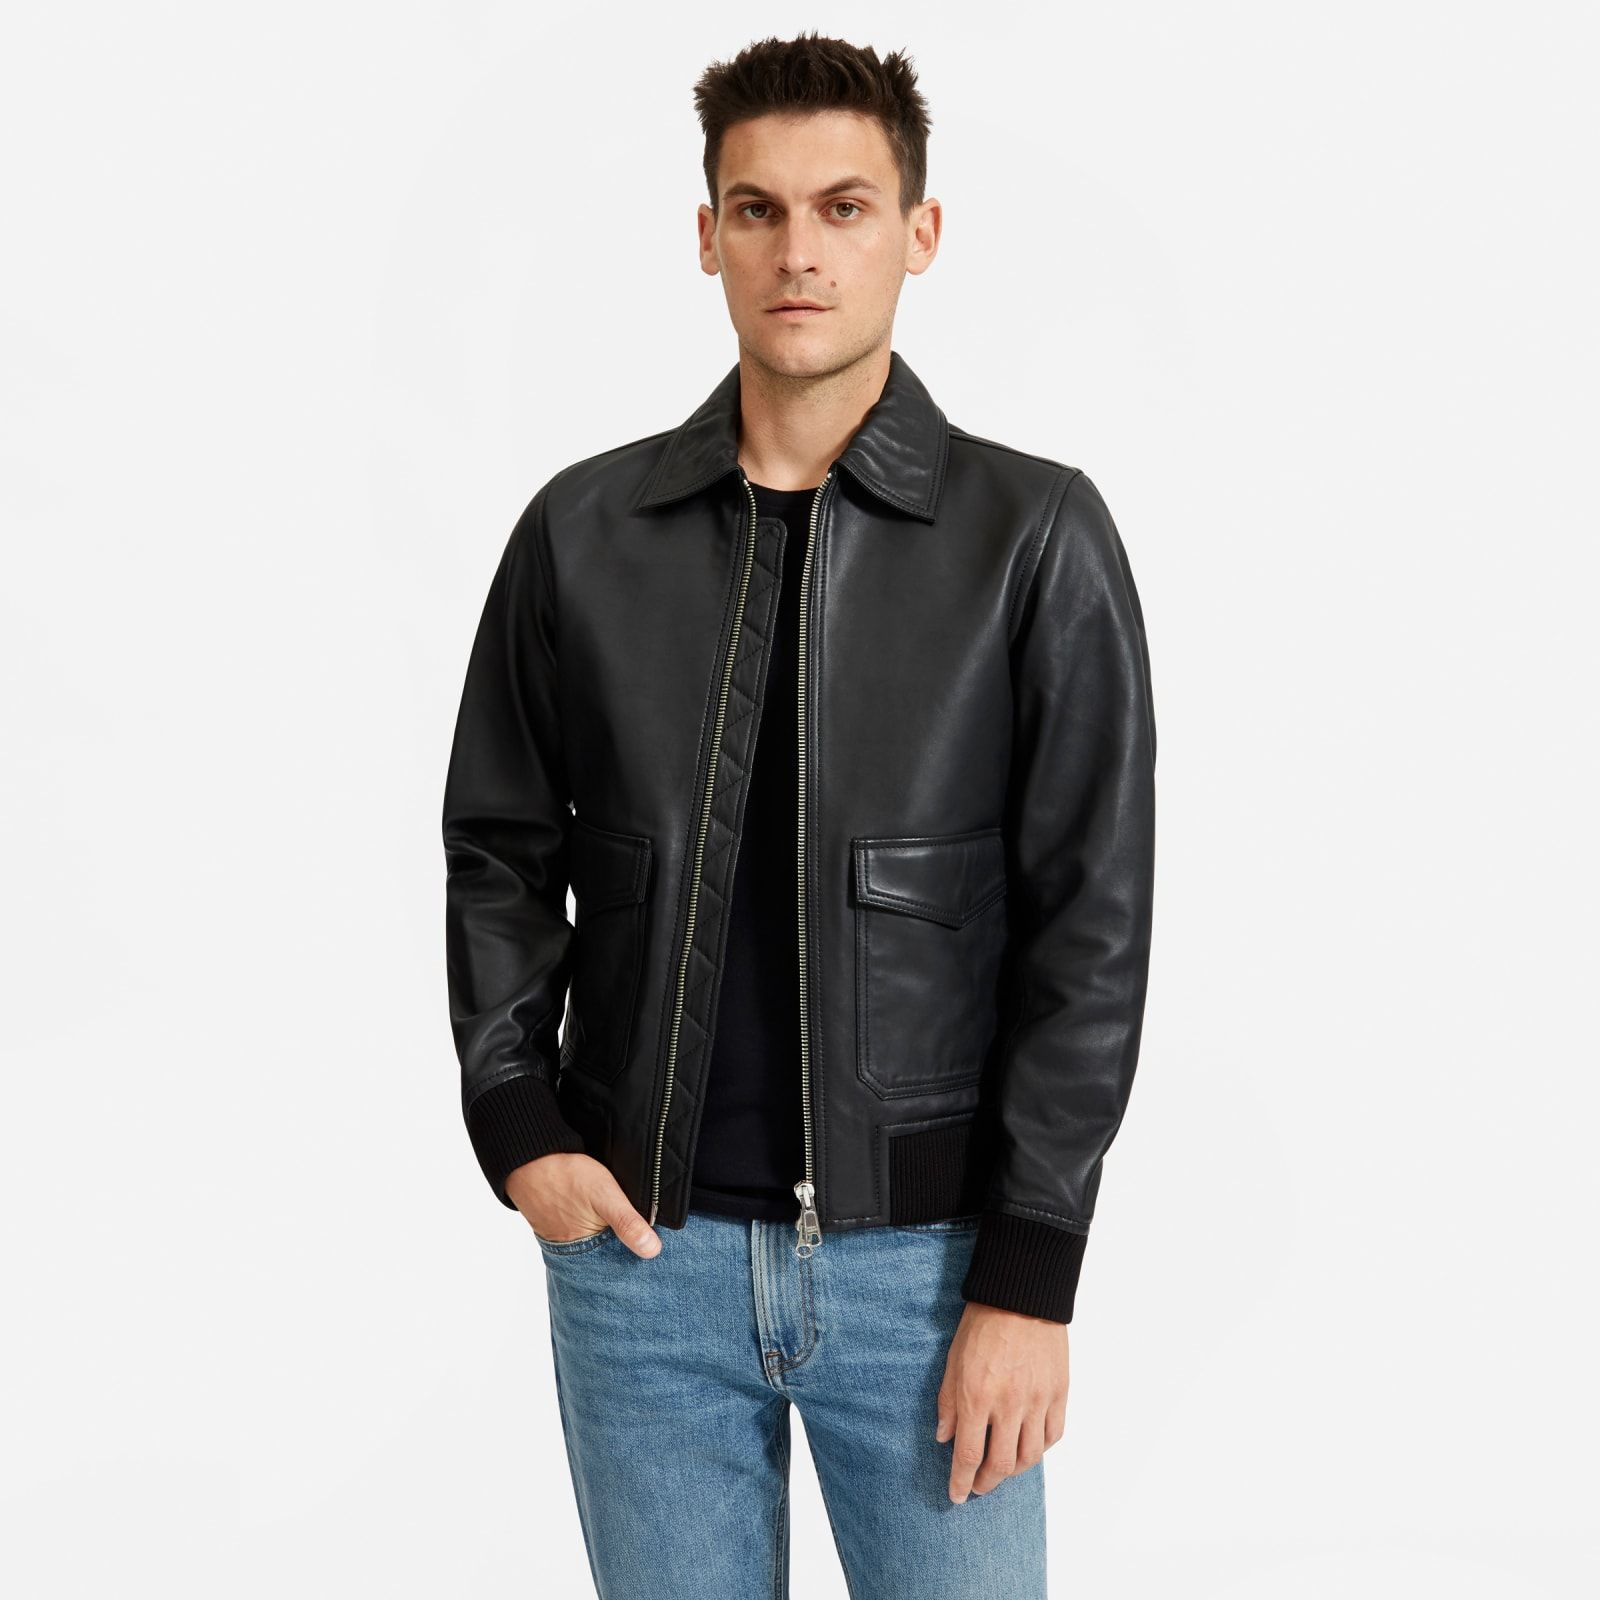 Men's Leather Bomber Jacket by Everlane in Black Mens